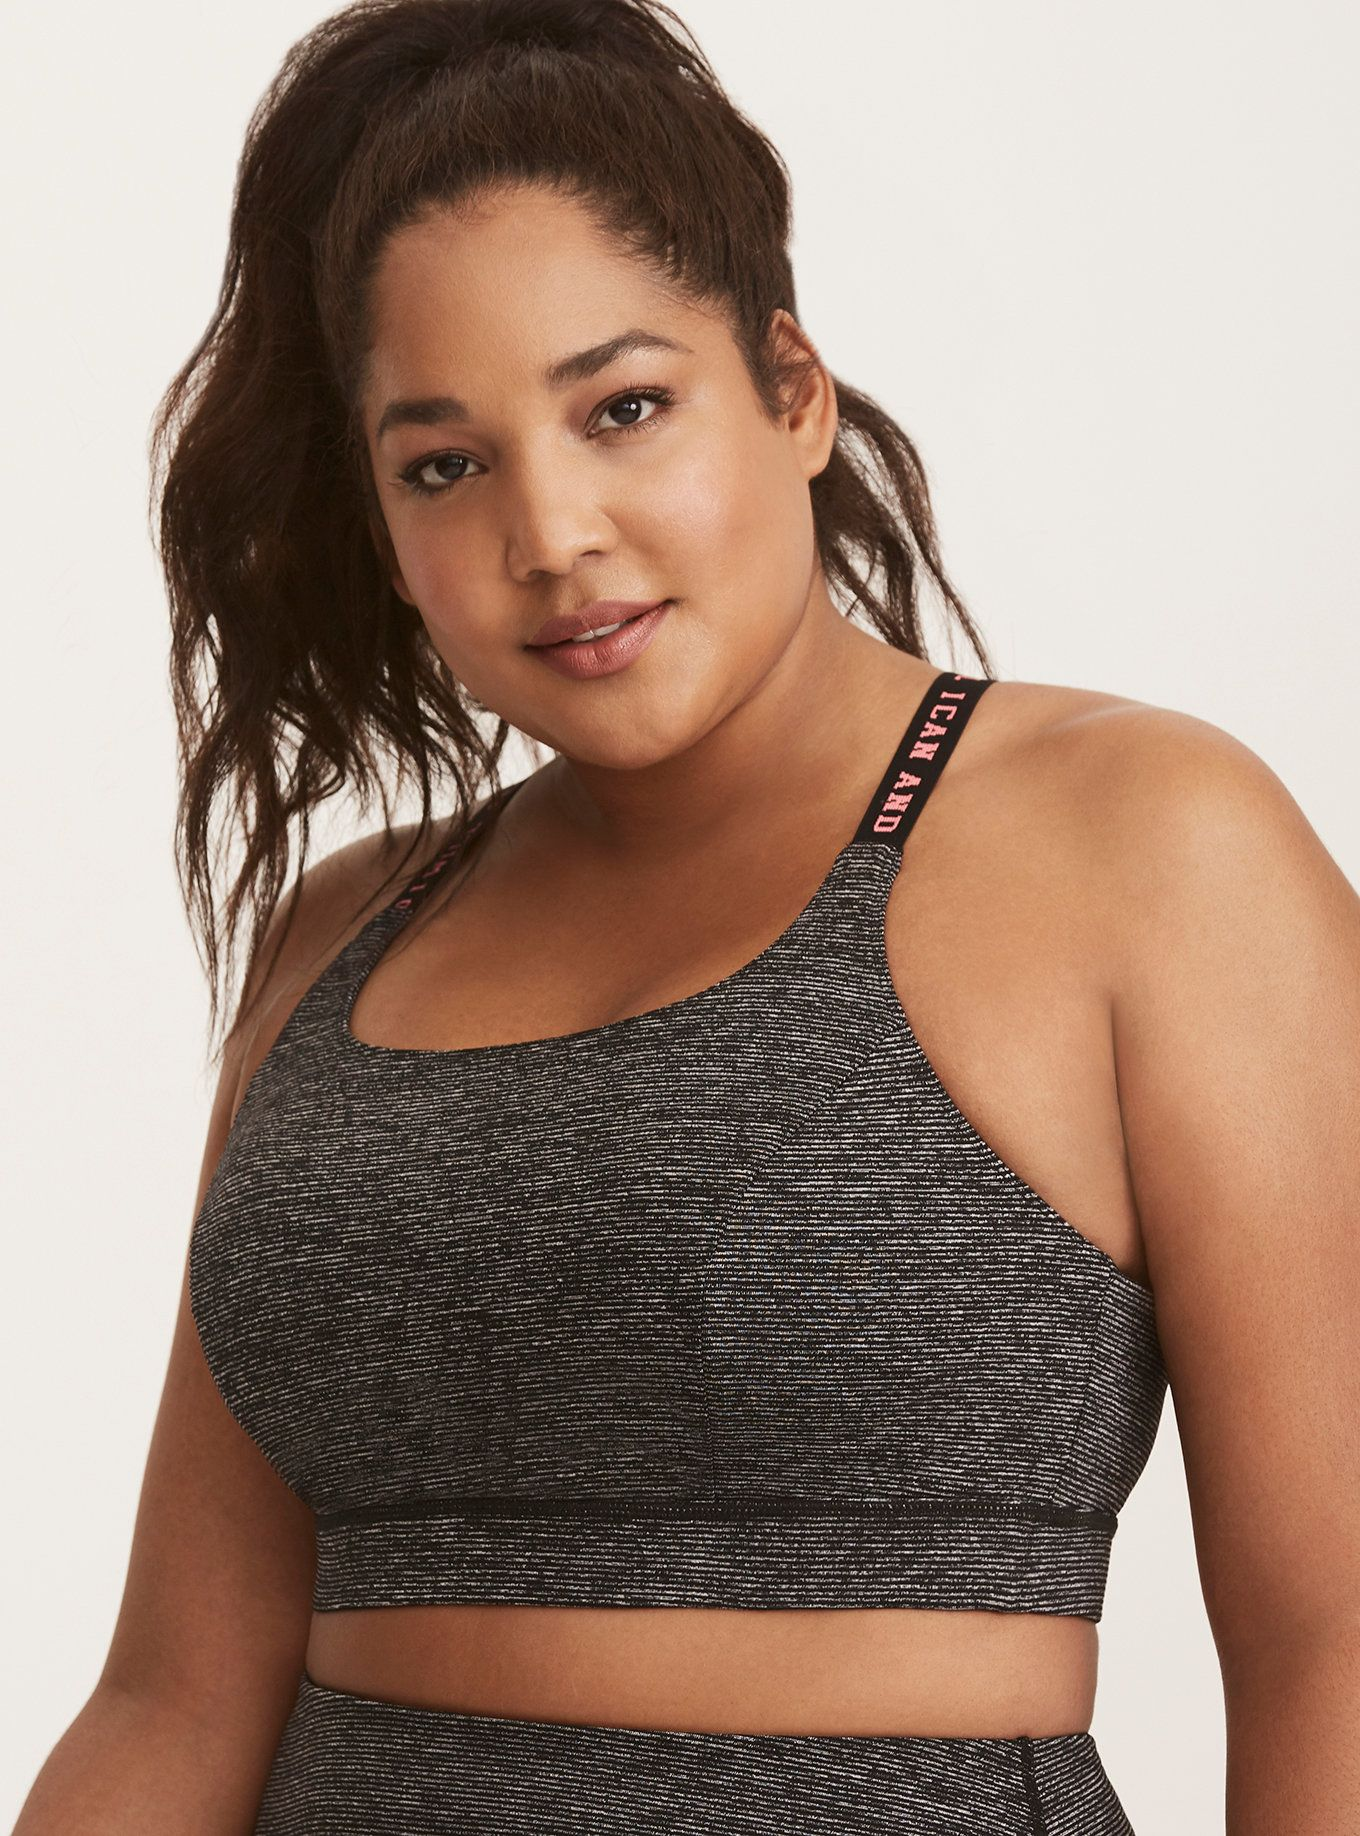 a4f3b04828aae Torrid Active - Space Dye Graphic Strap Sports Bra